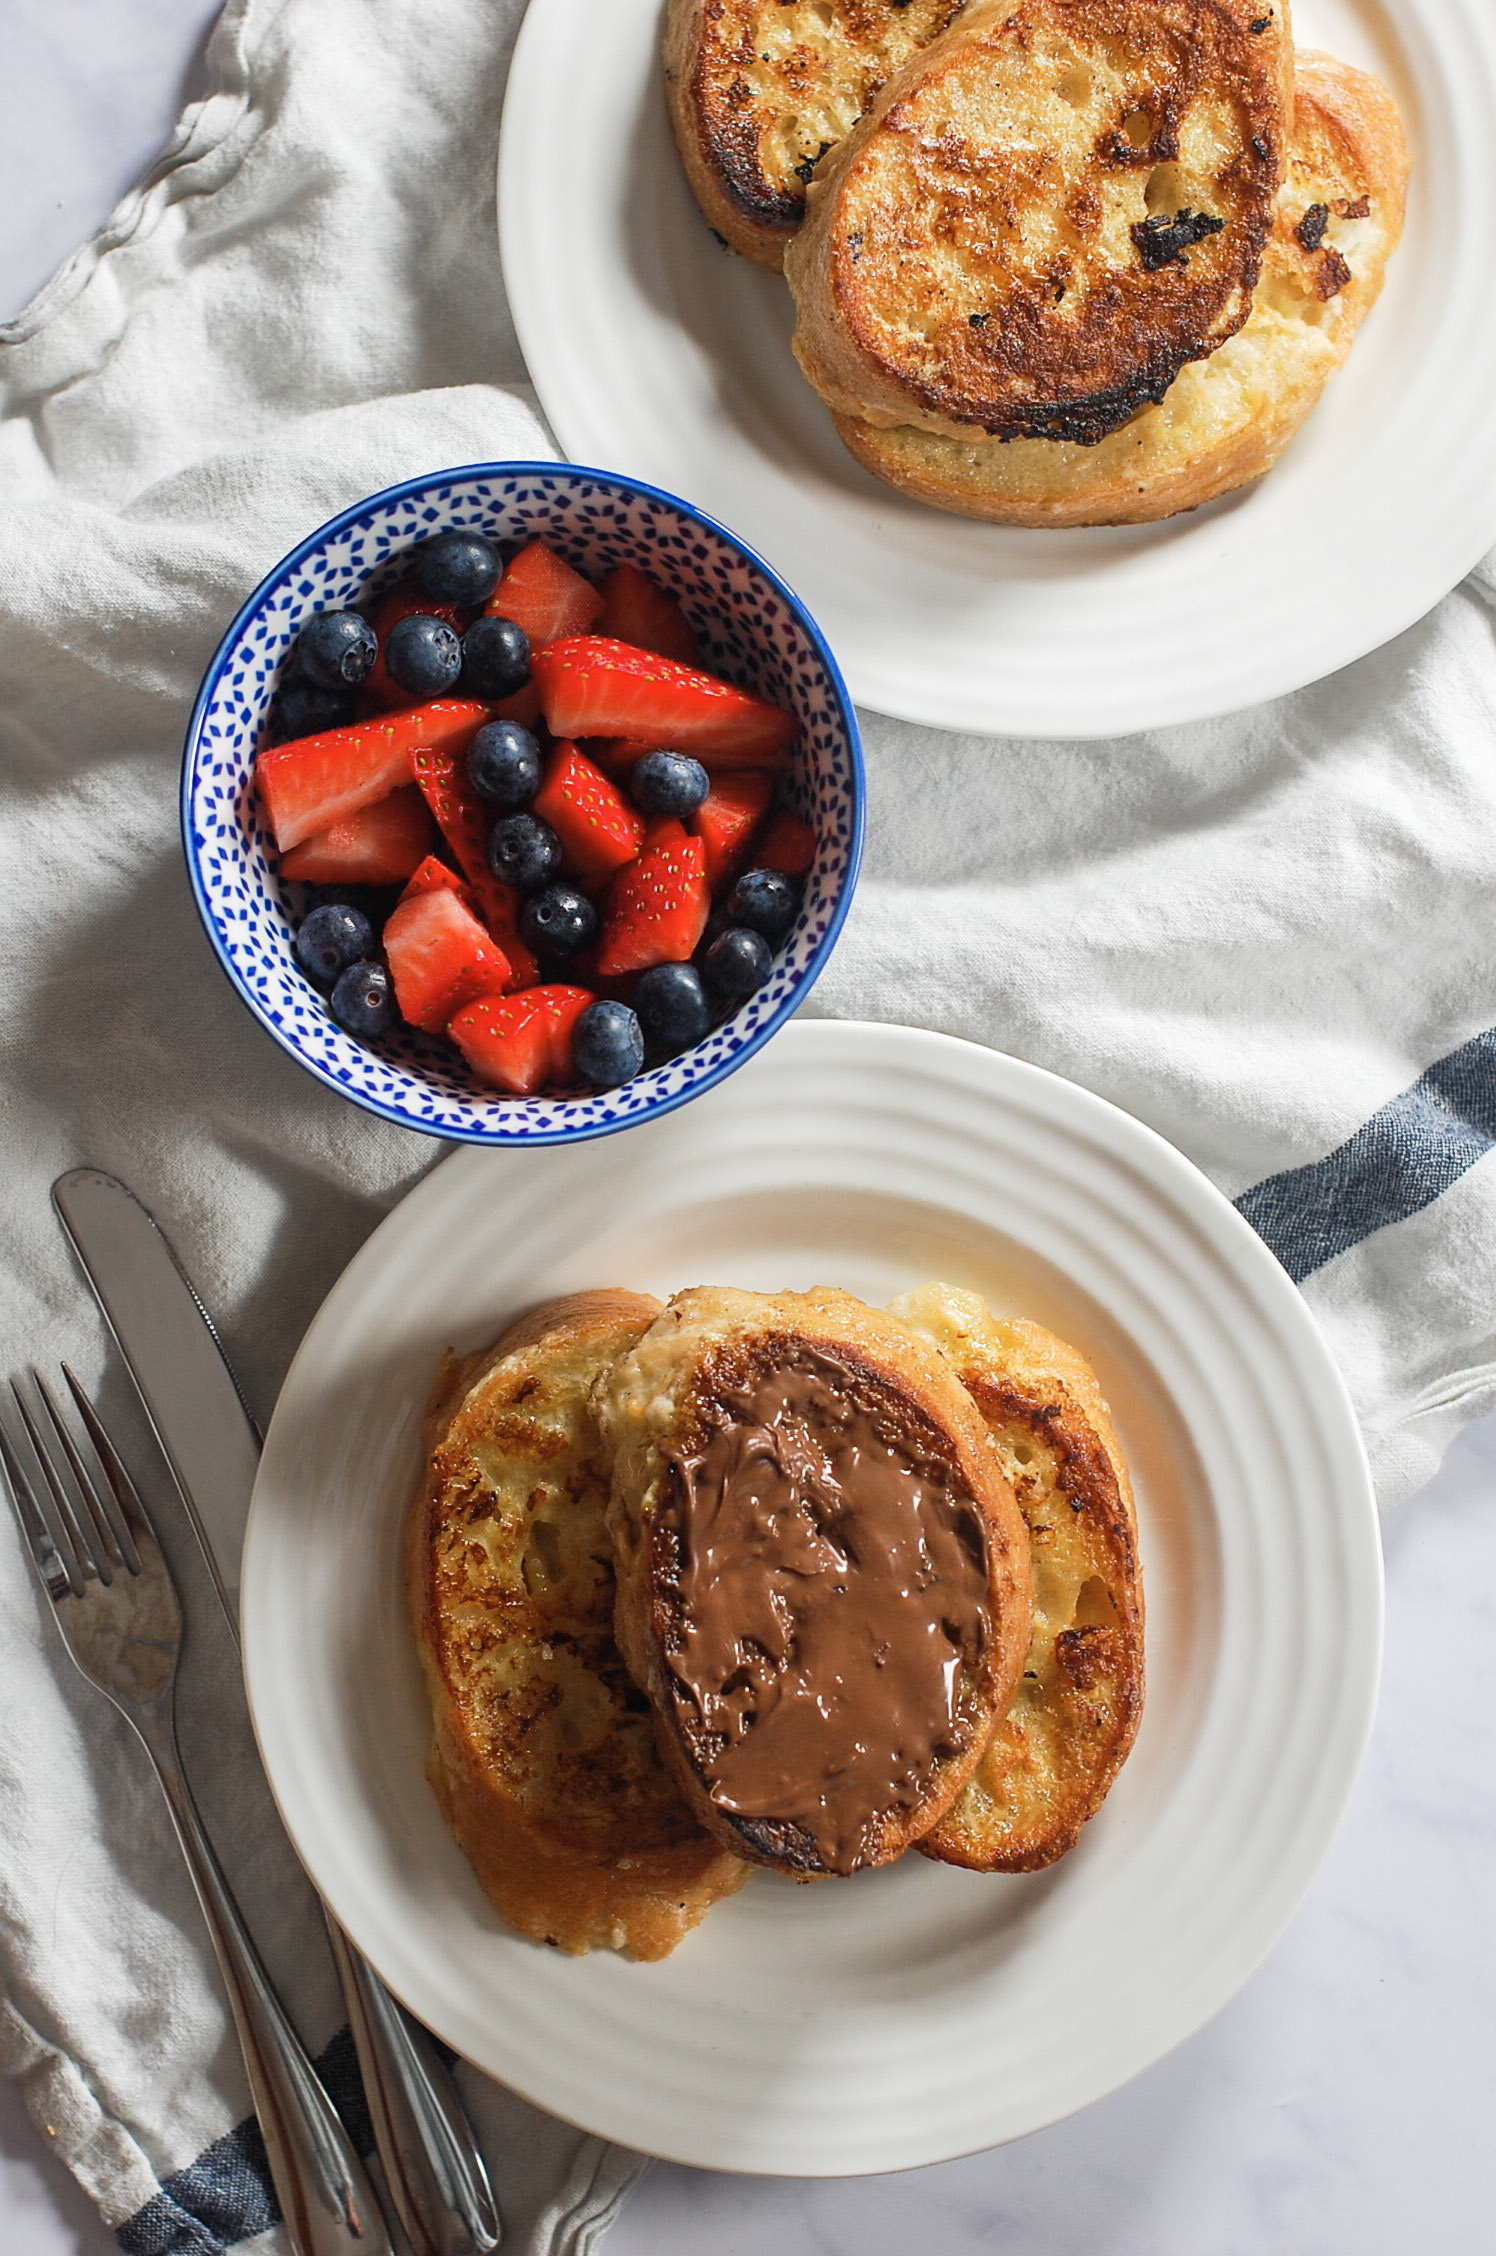 Spanish toasts torrijas and a bowl of fresh berries